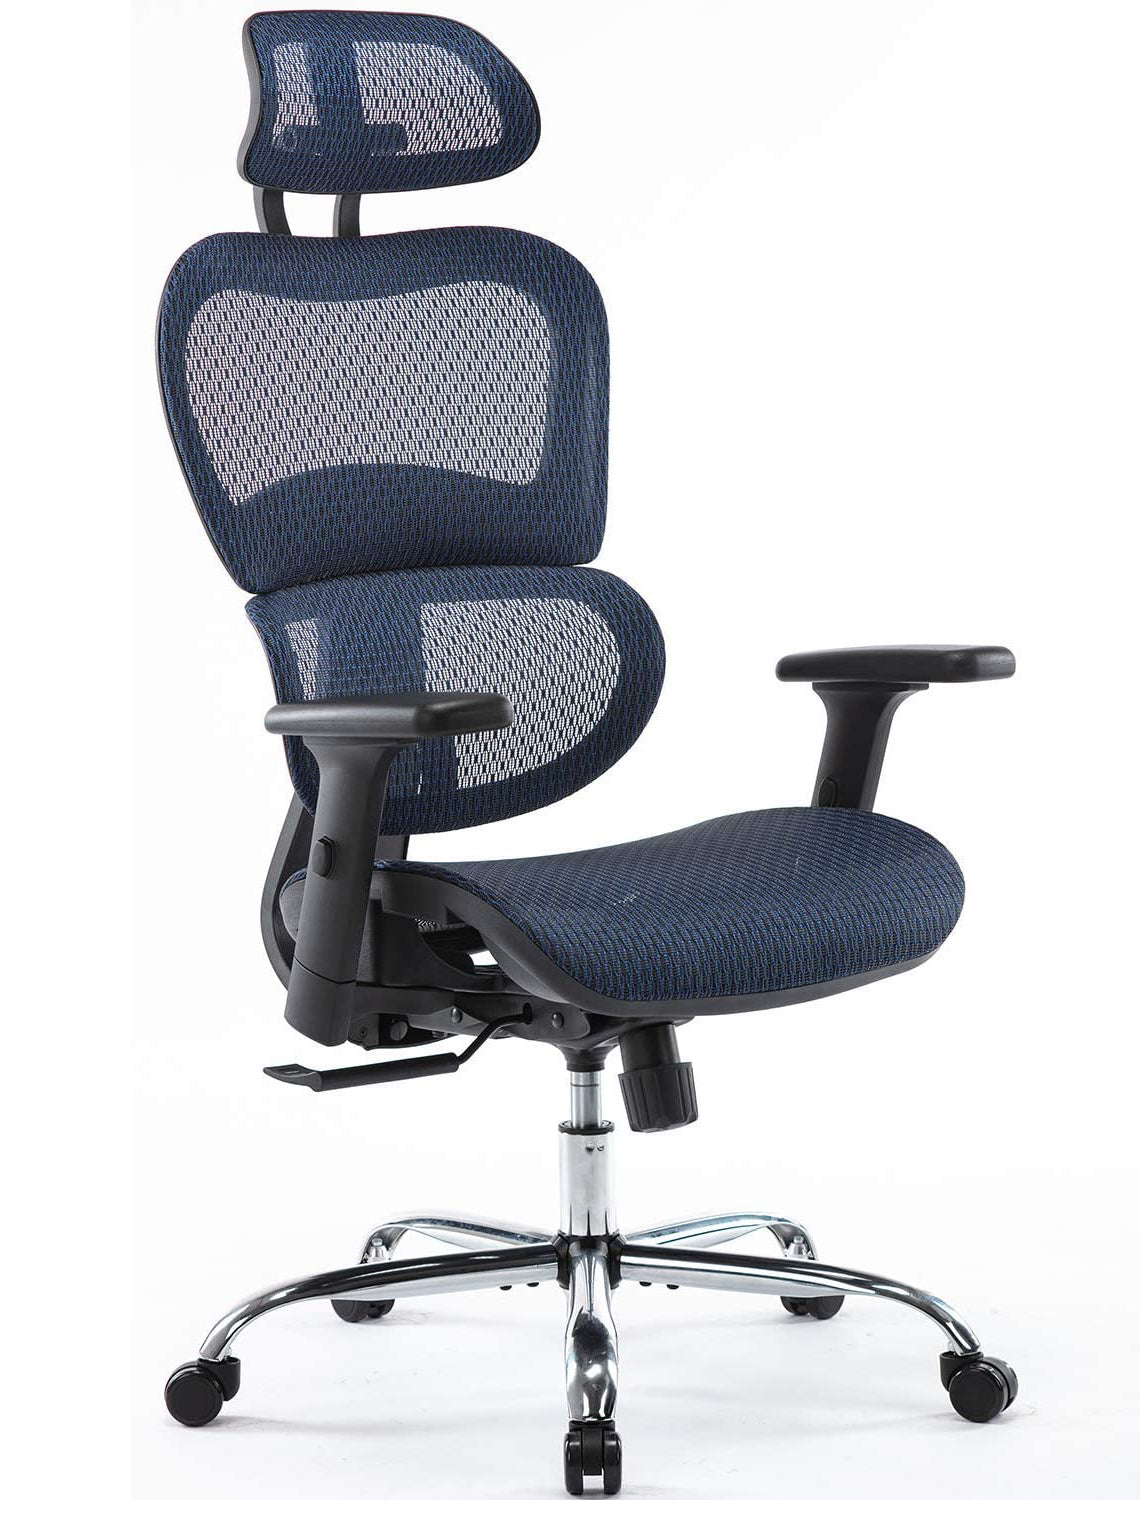 Smugdesk Ergonomic High Back Adjustable Office Chair-BLUE